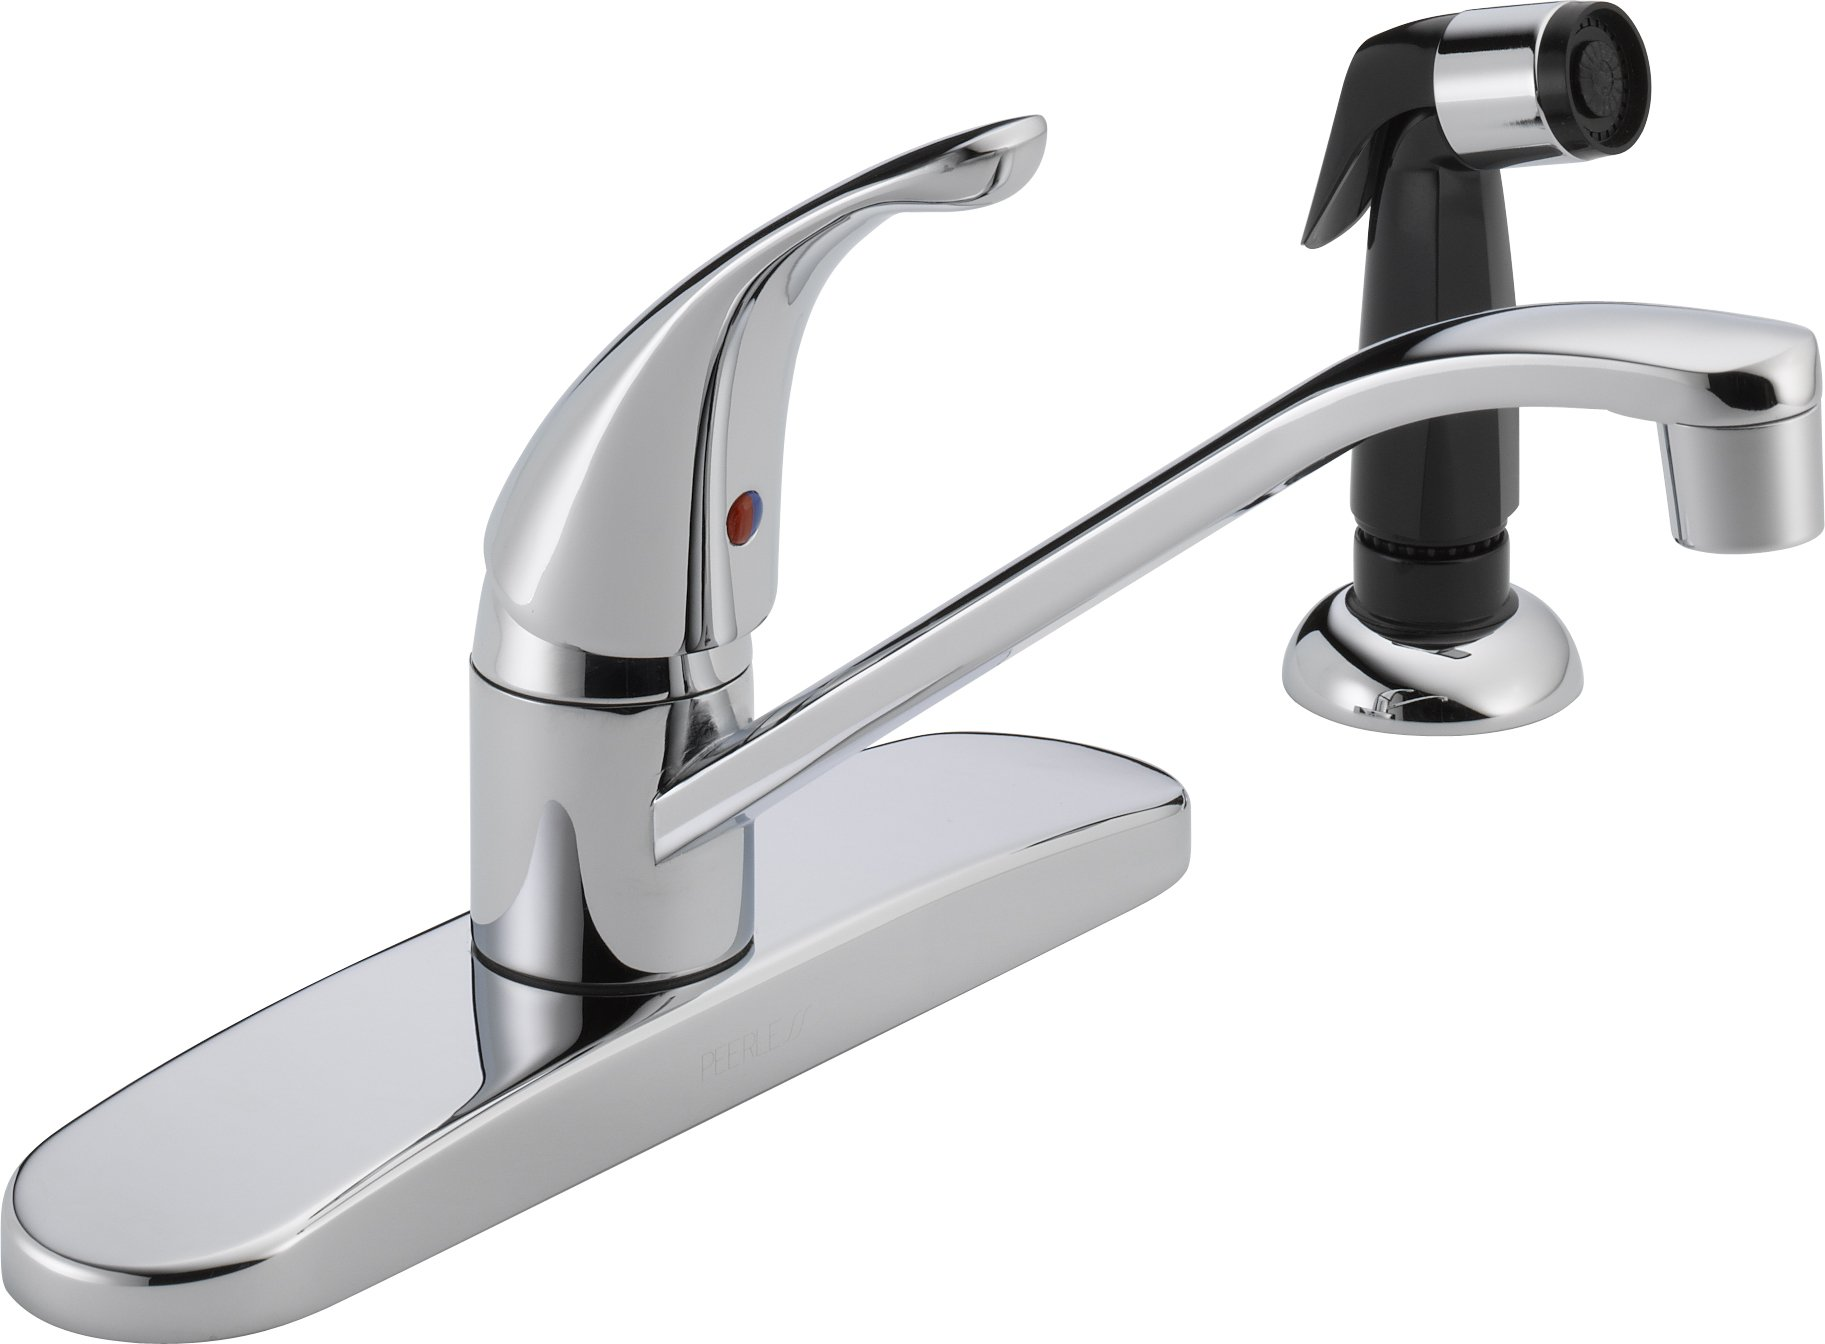 Peerless Single-Handle Kitchen Sink Faucet with Side Sprayer, Chrome P115LF by DELTA FAUCET